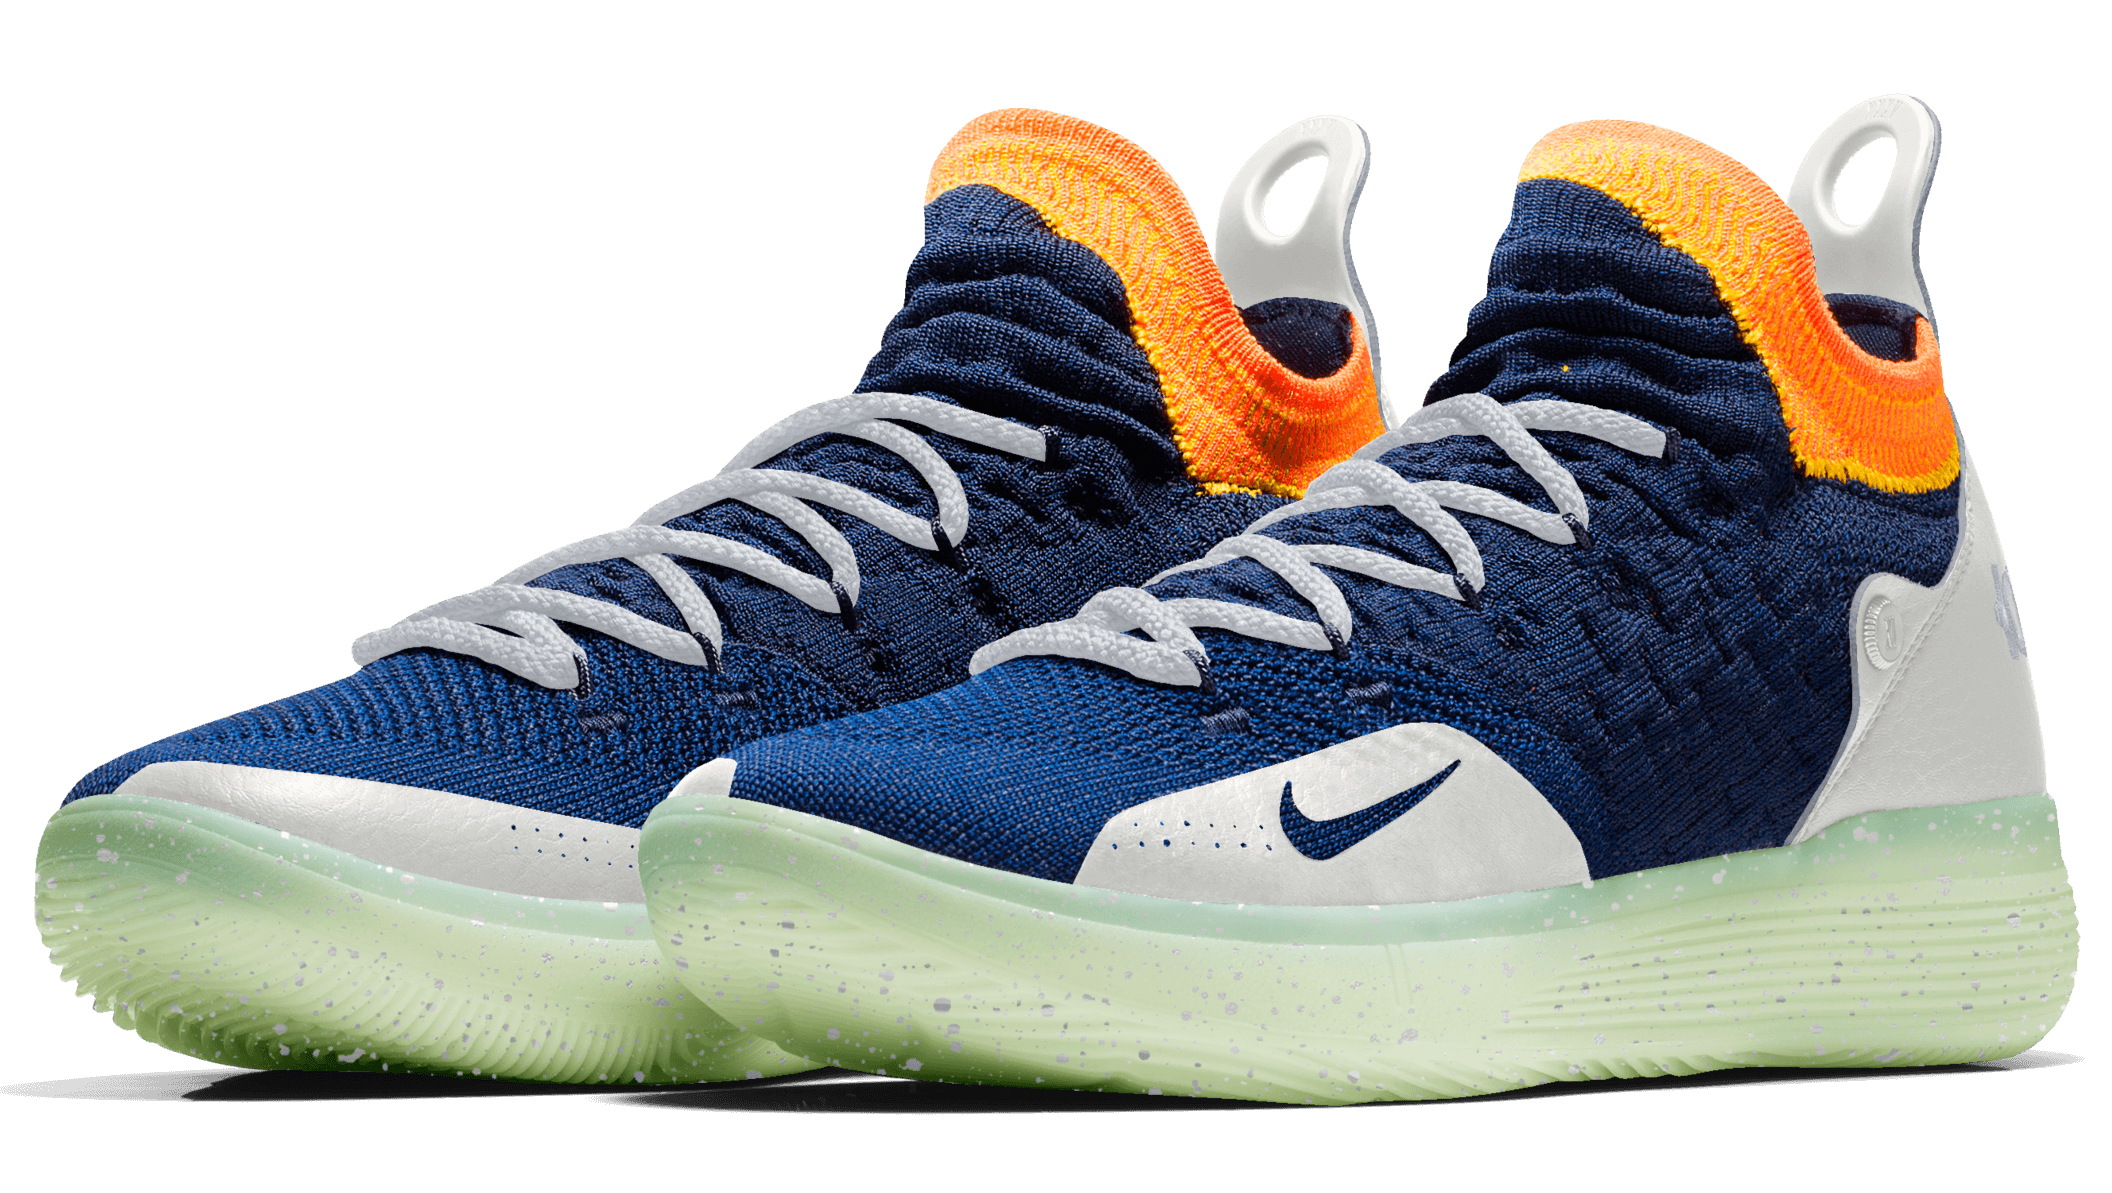 kd 11 glow in the dark Kevin Durant